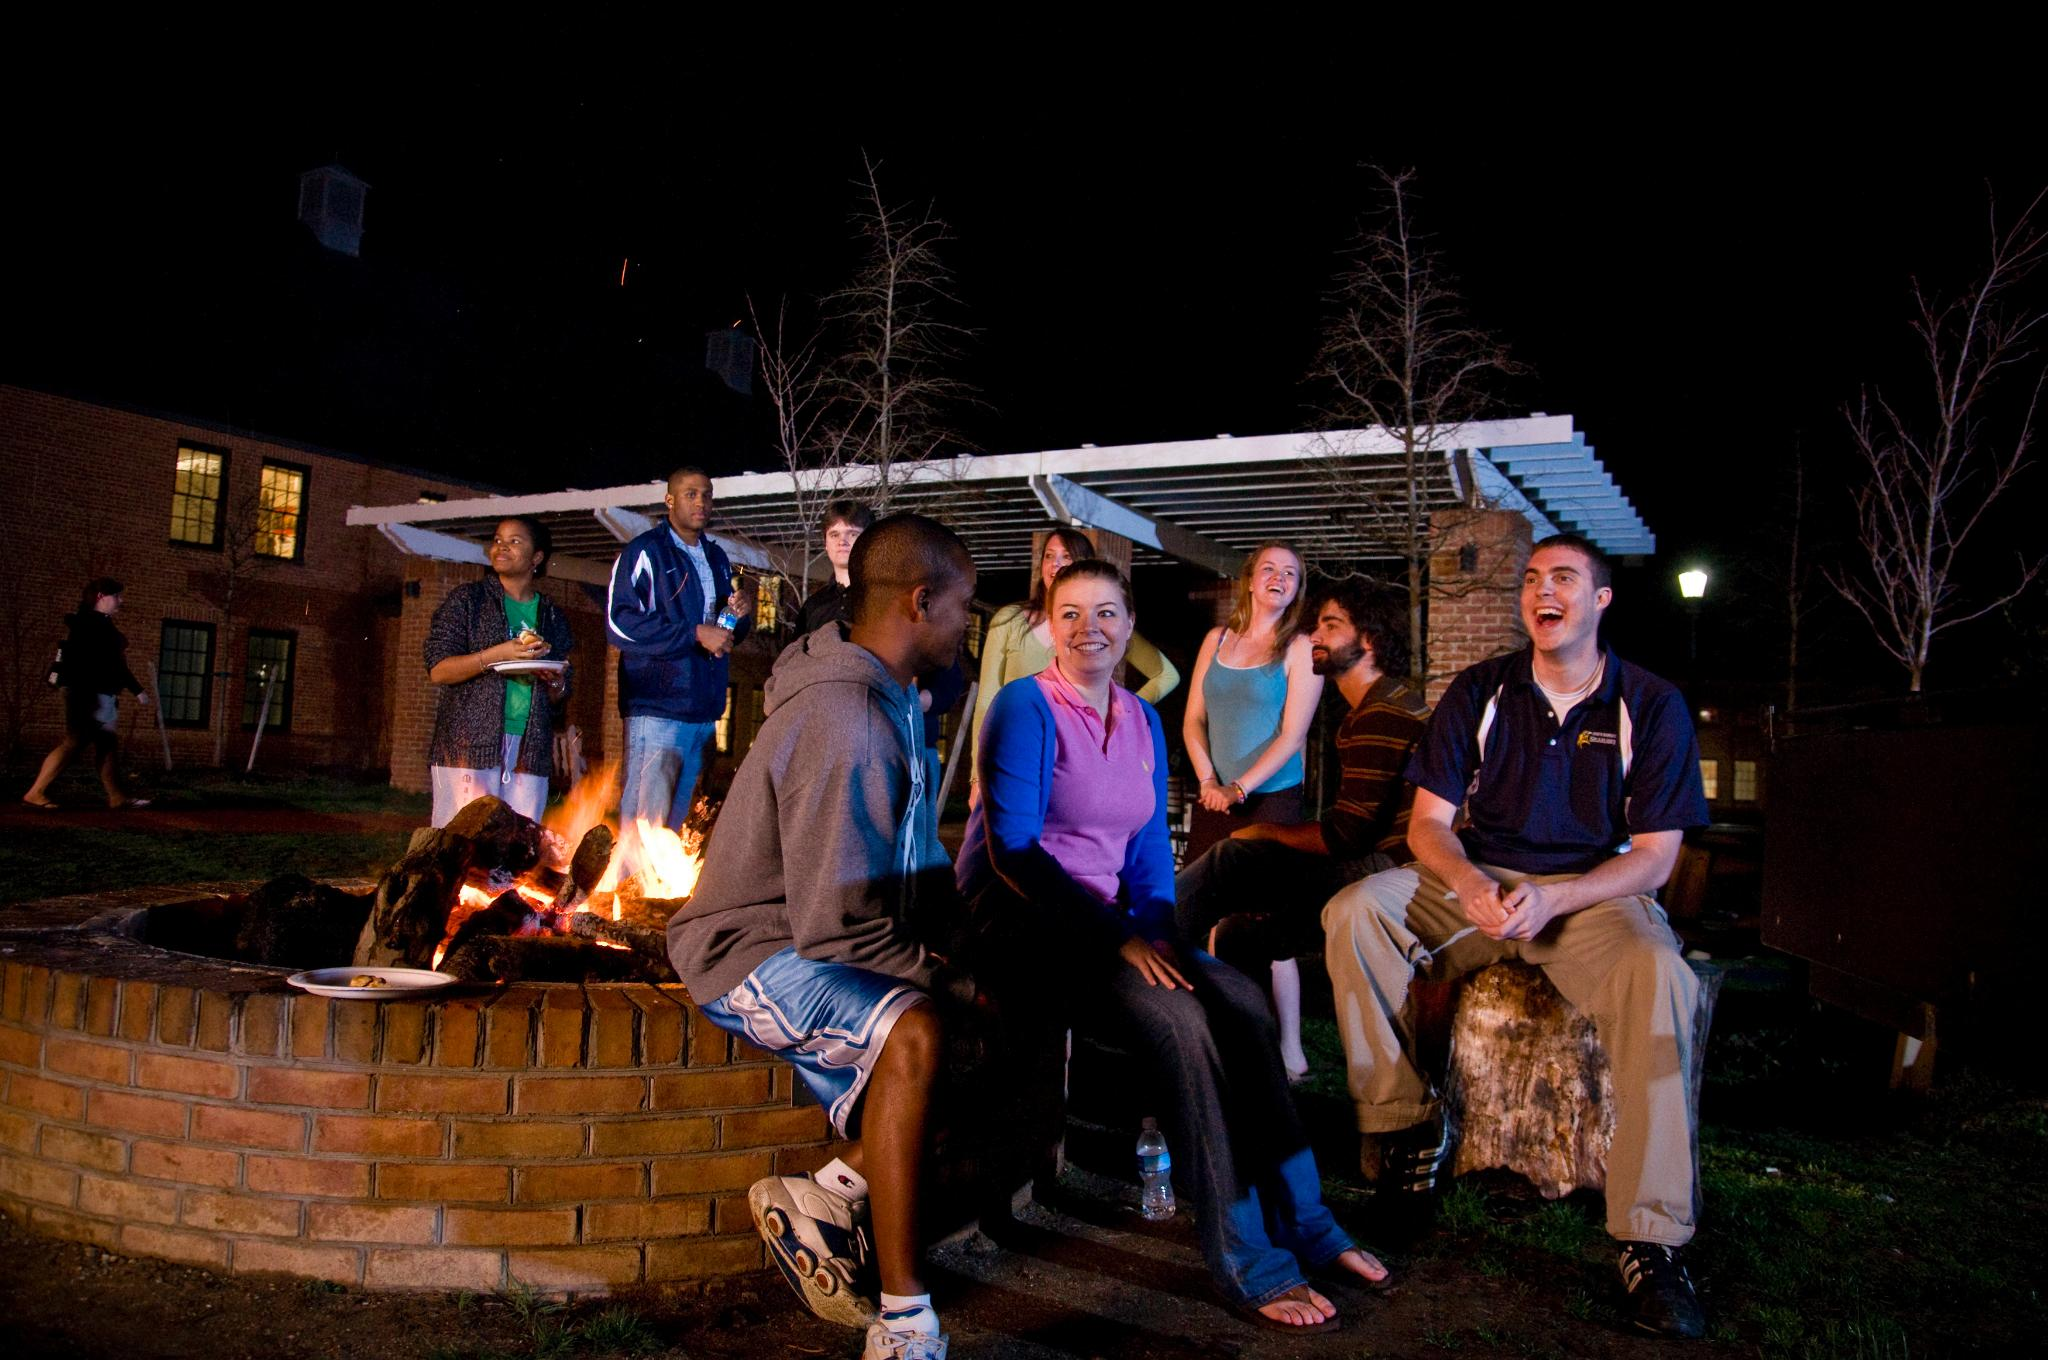 A group of students hanging out at the fire pit